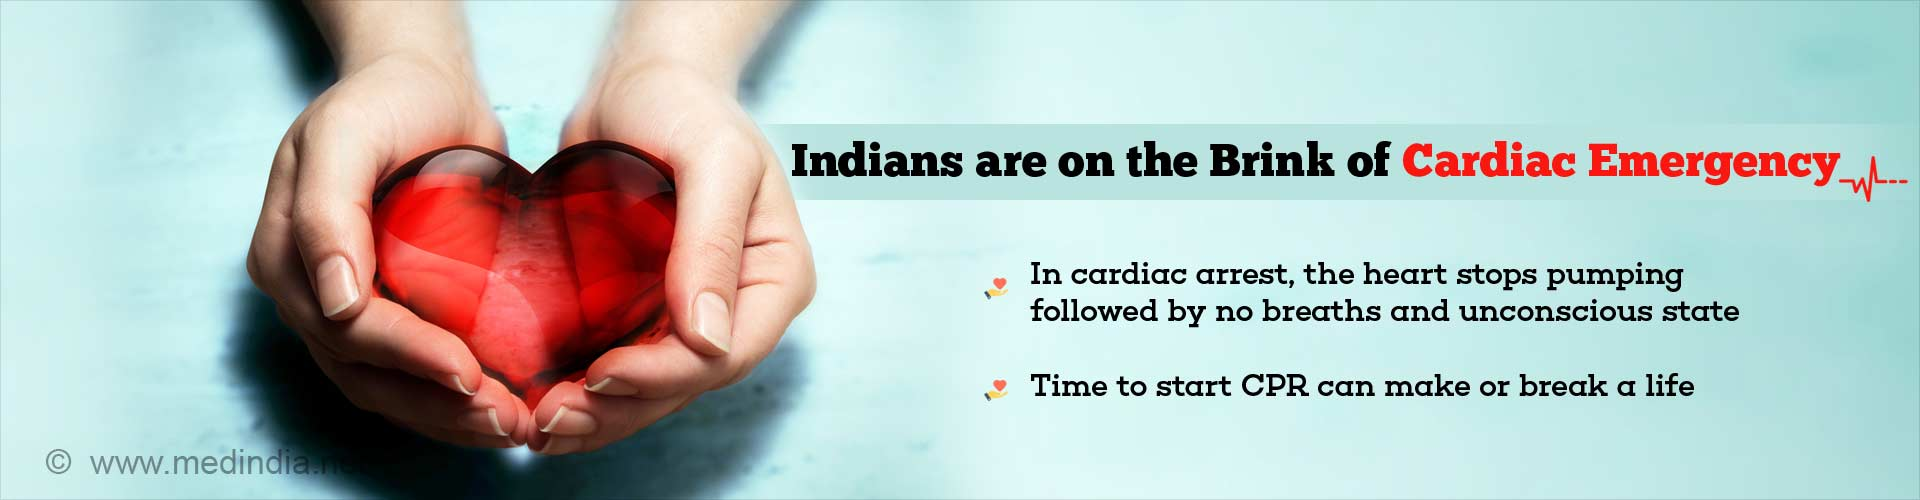 Indians are on The Brink of Cardiac Emergency